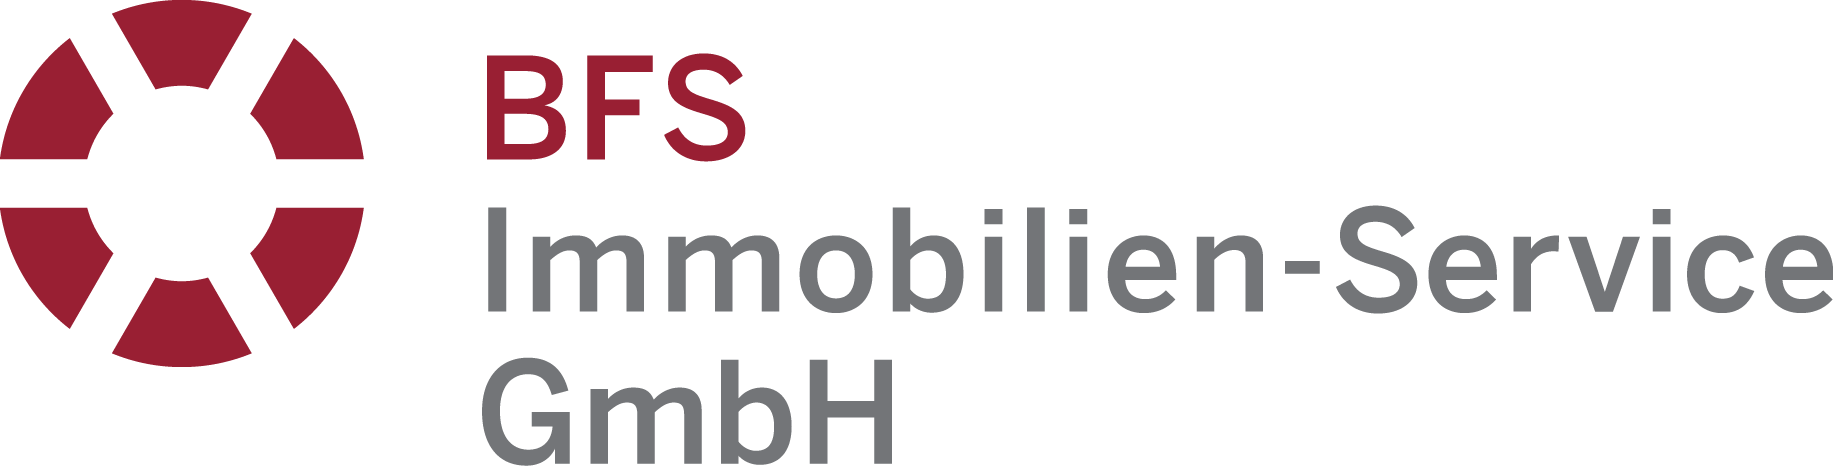 BFS Immobilien-Service GmbH